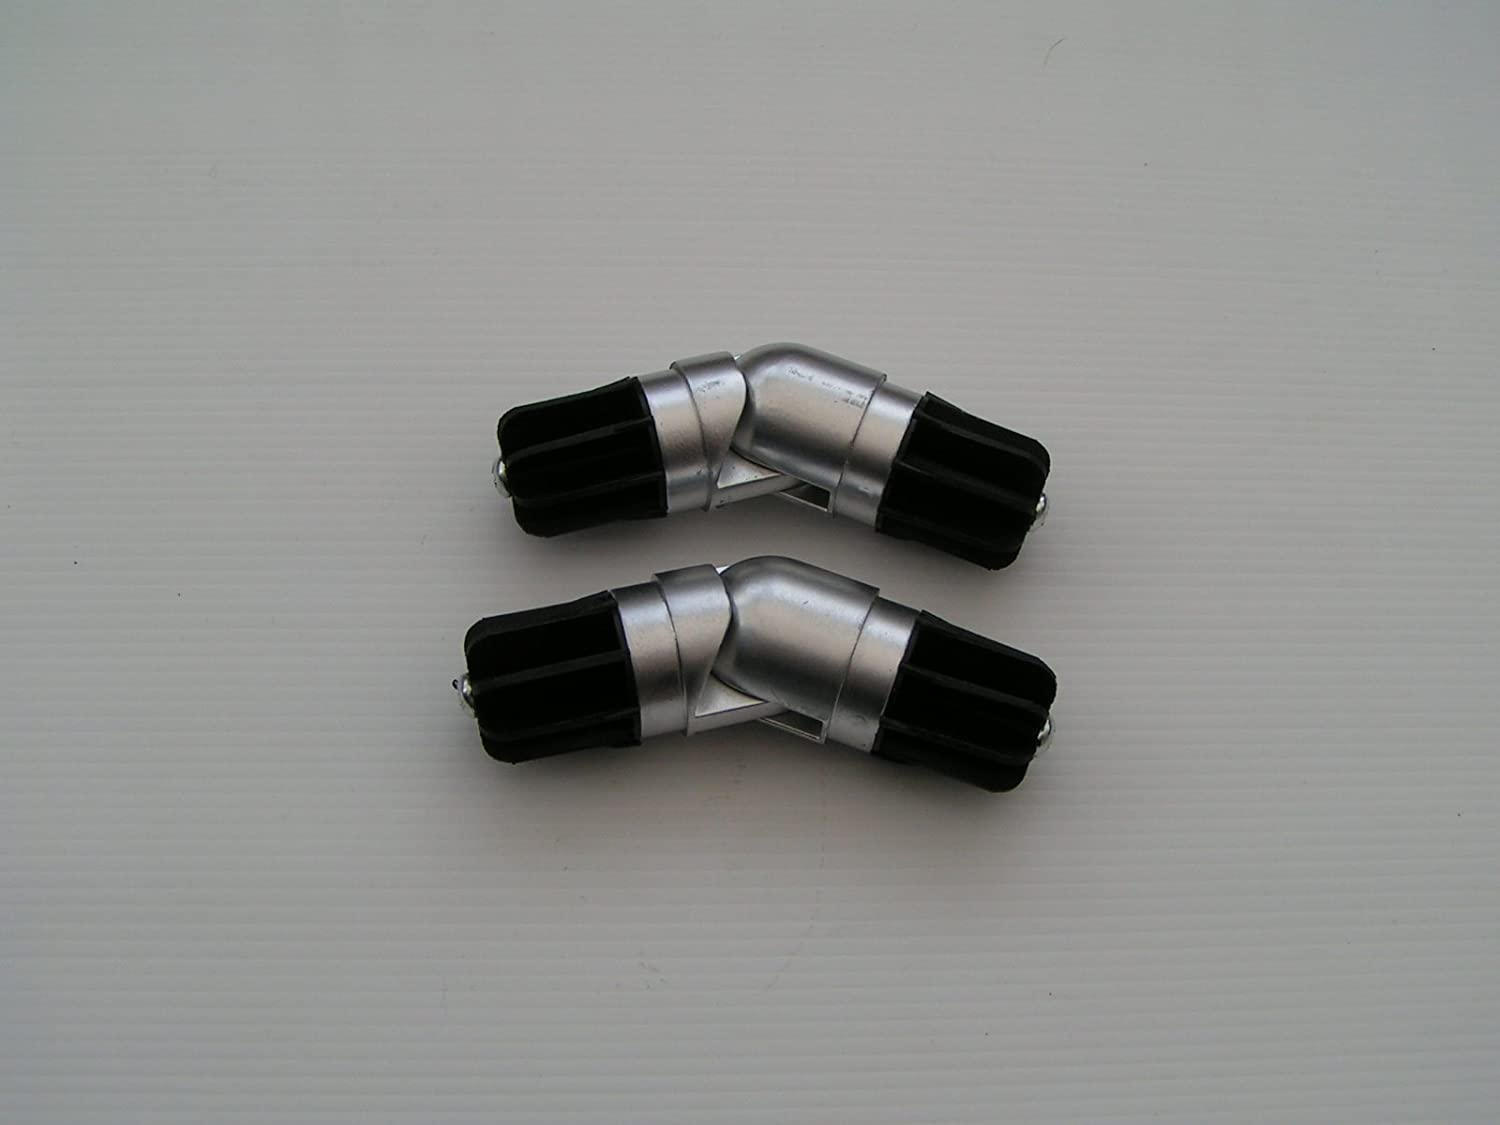 Bay windows and corner curtain rods apps directories - 2 X 28mm Chrome Bay Window Curtain Pole Elbow Joint Connector